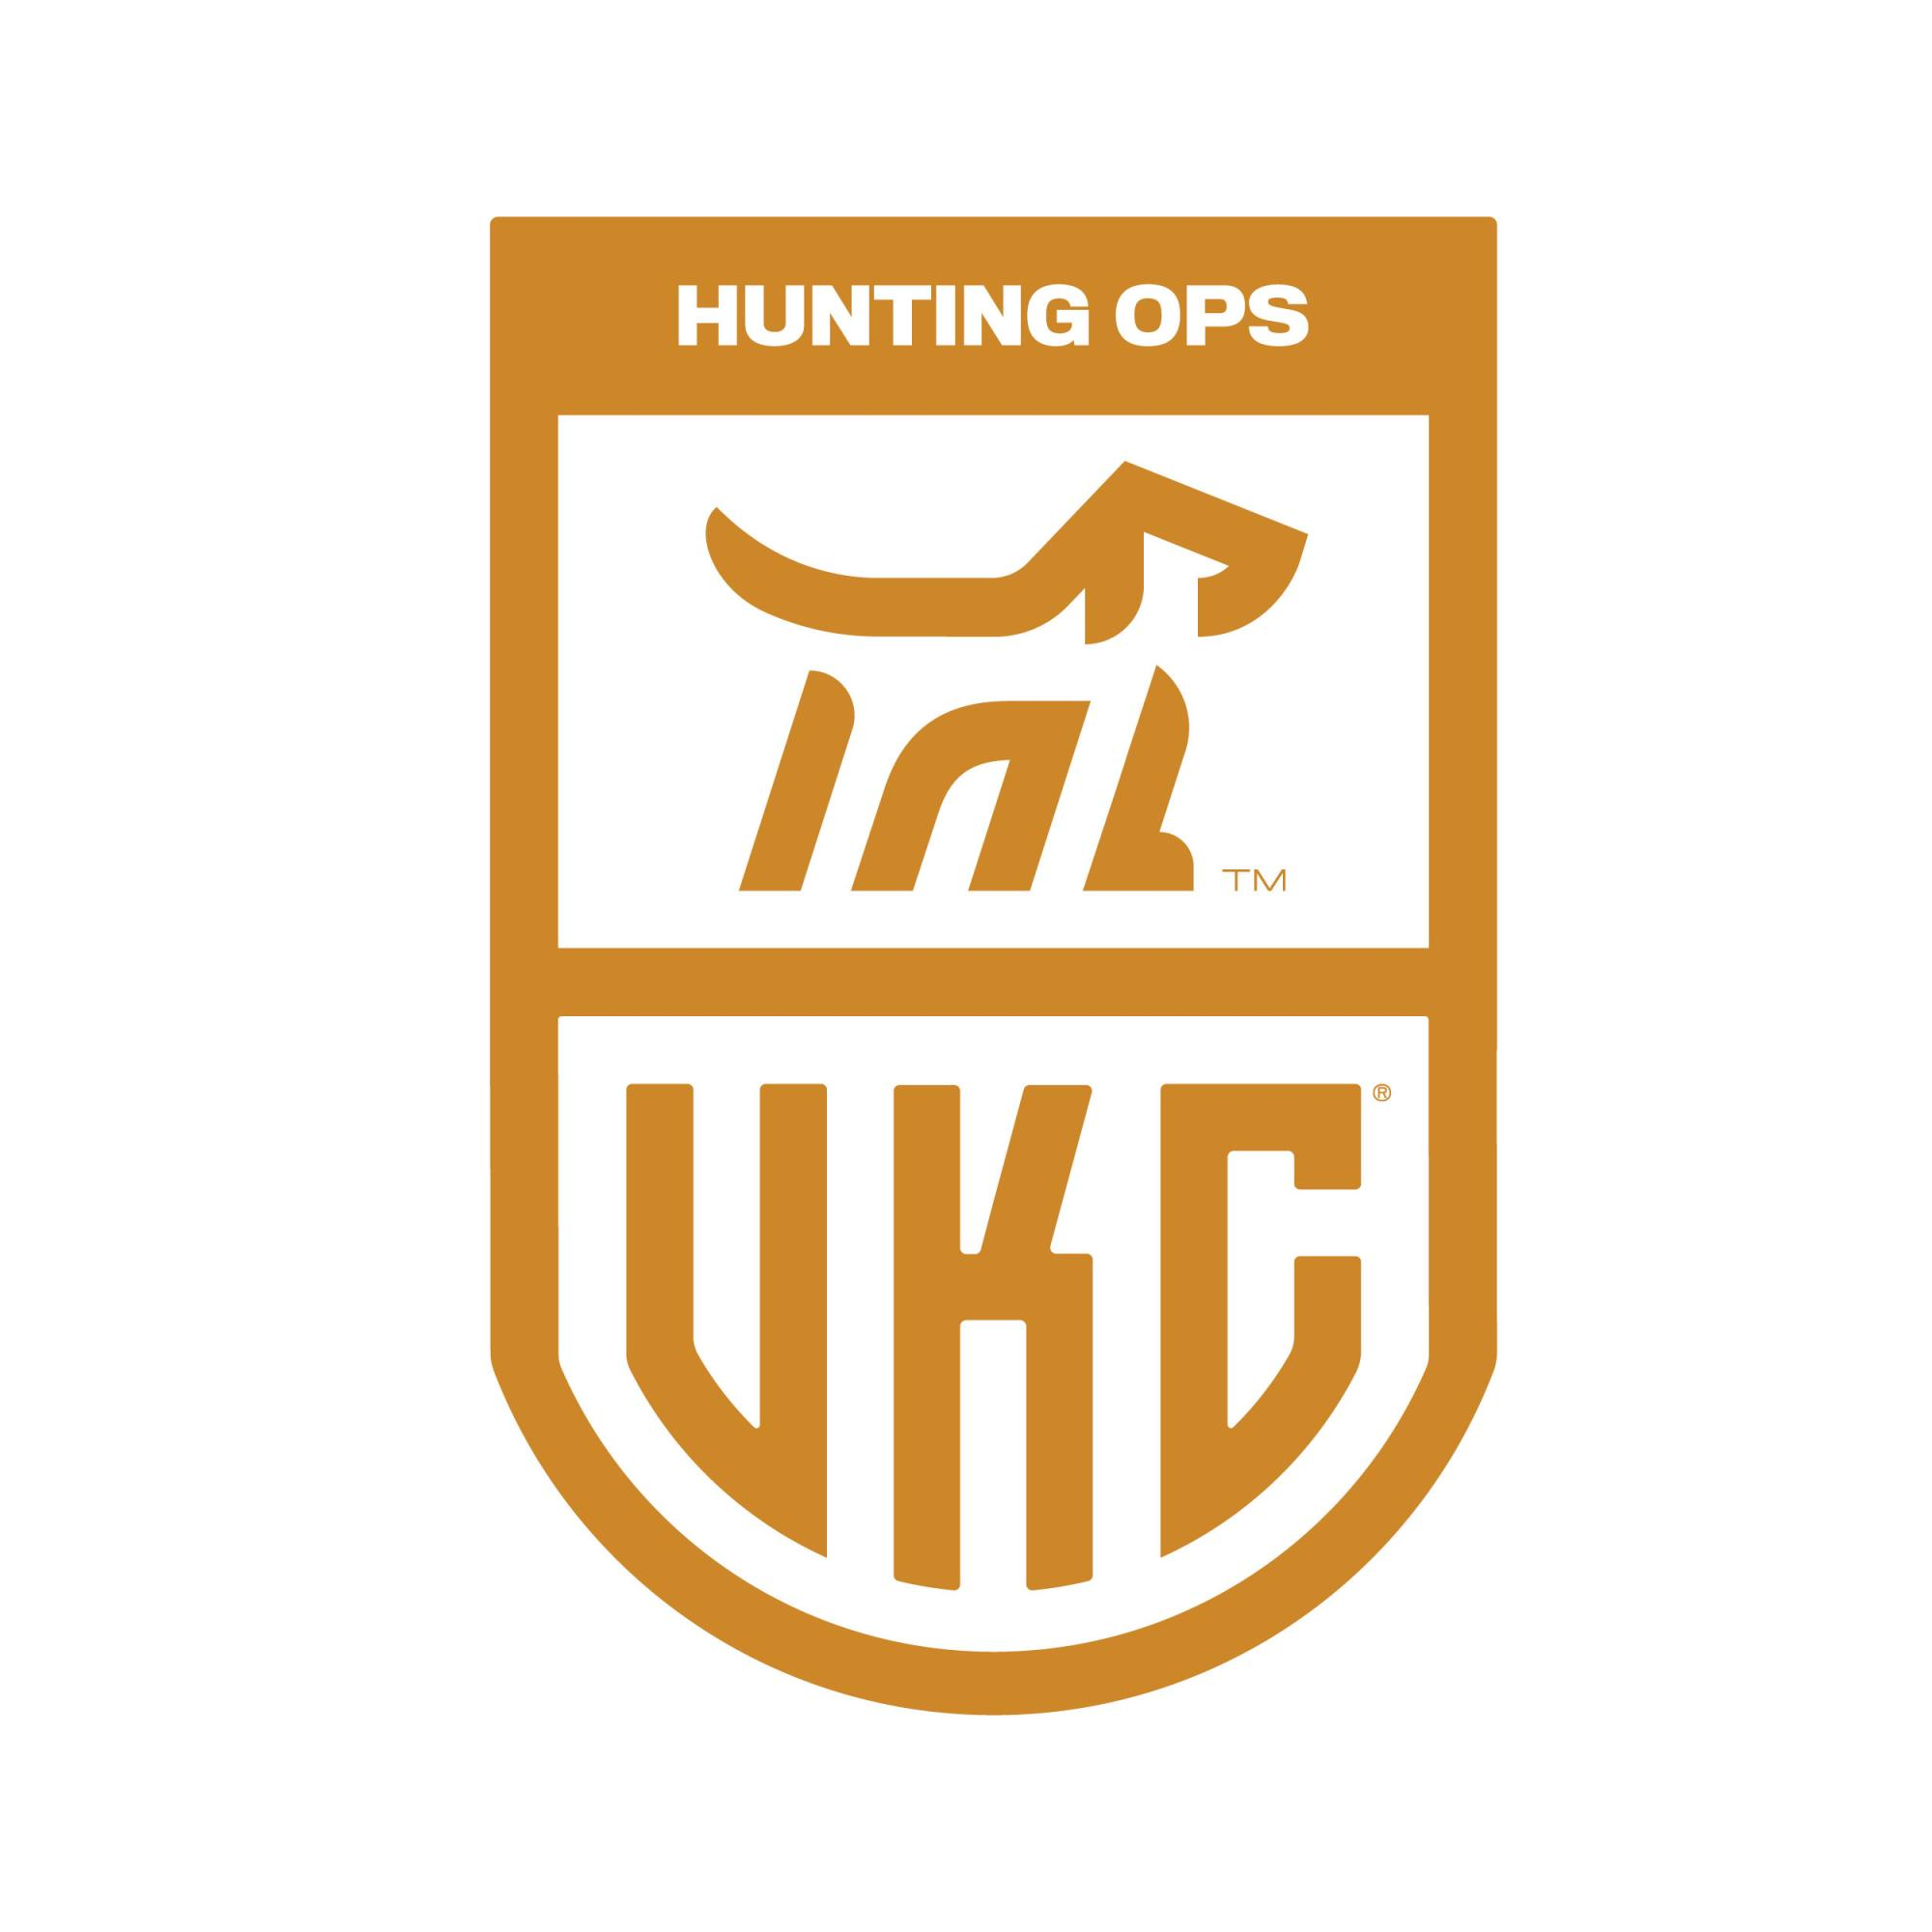 ukc-logo-hunting-ops